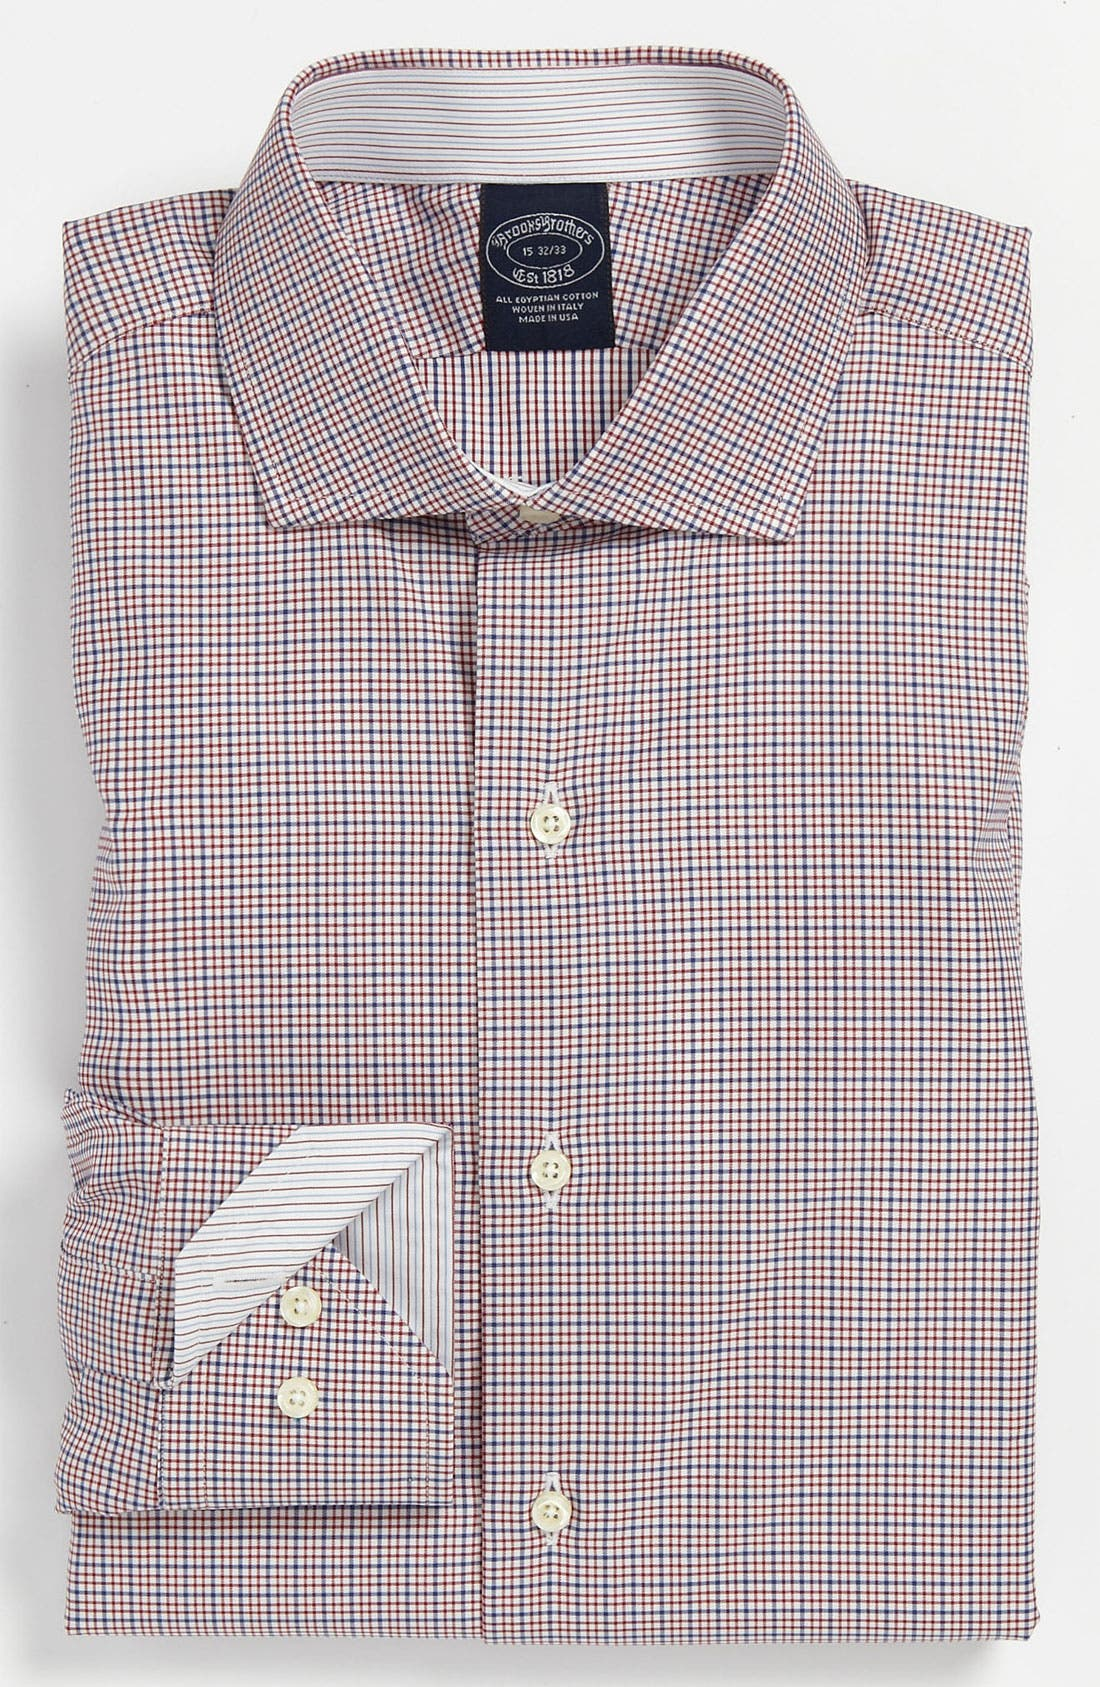 Alternate Image 1 Selected - Brooks Brothers Regular Fit Dress Shirt